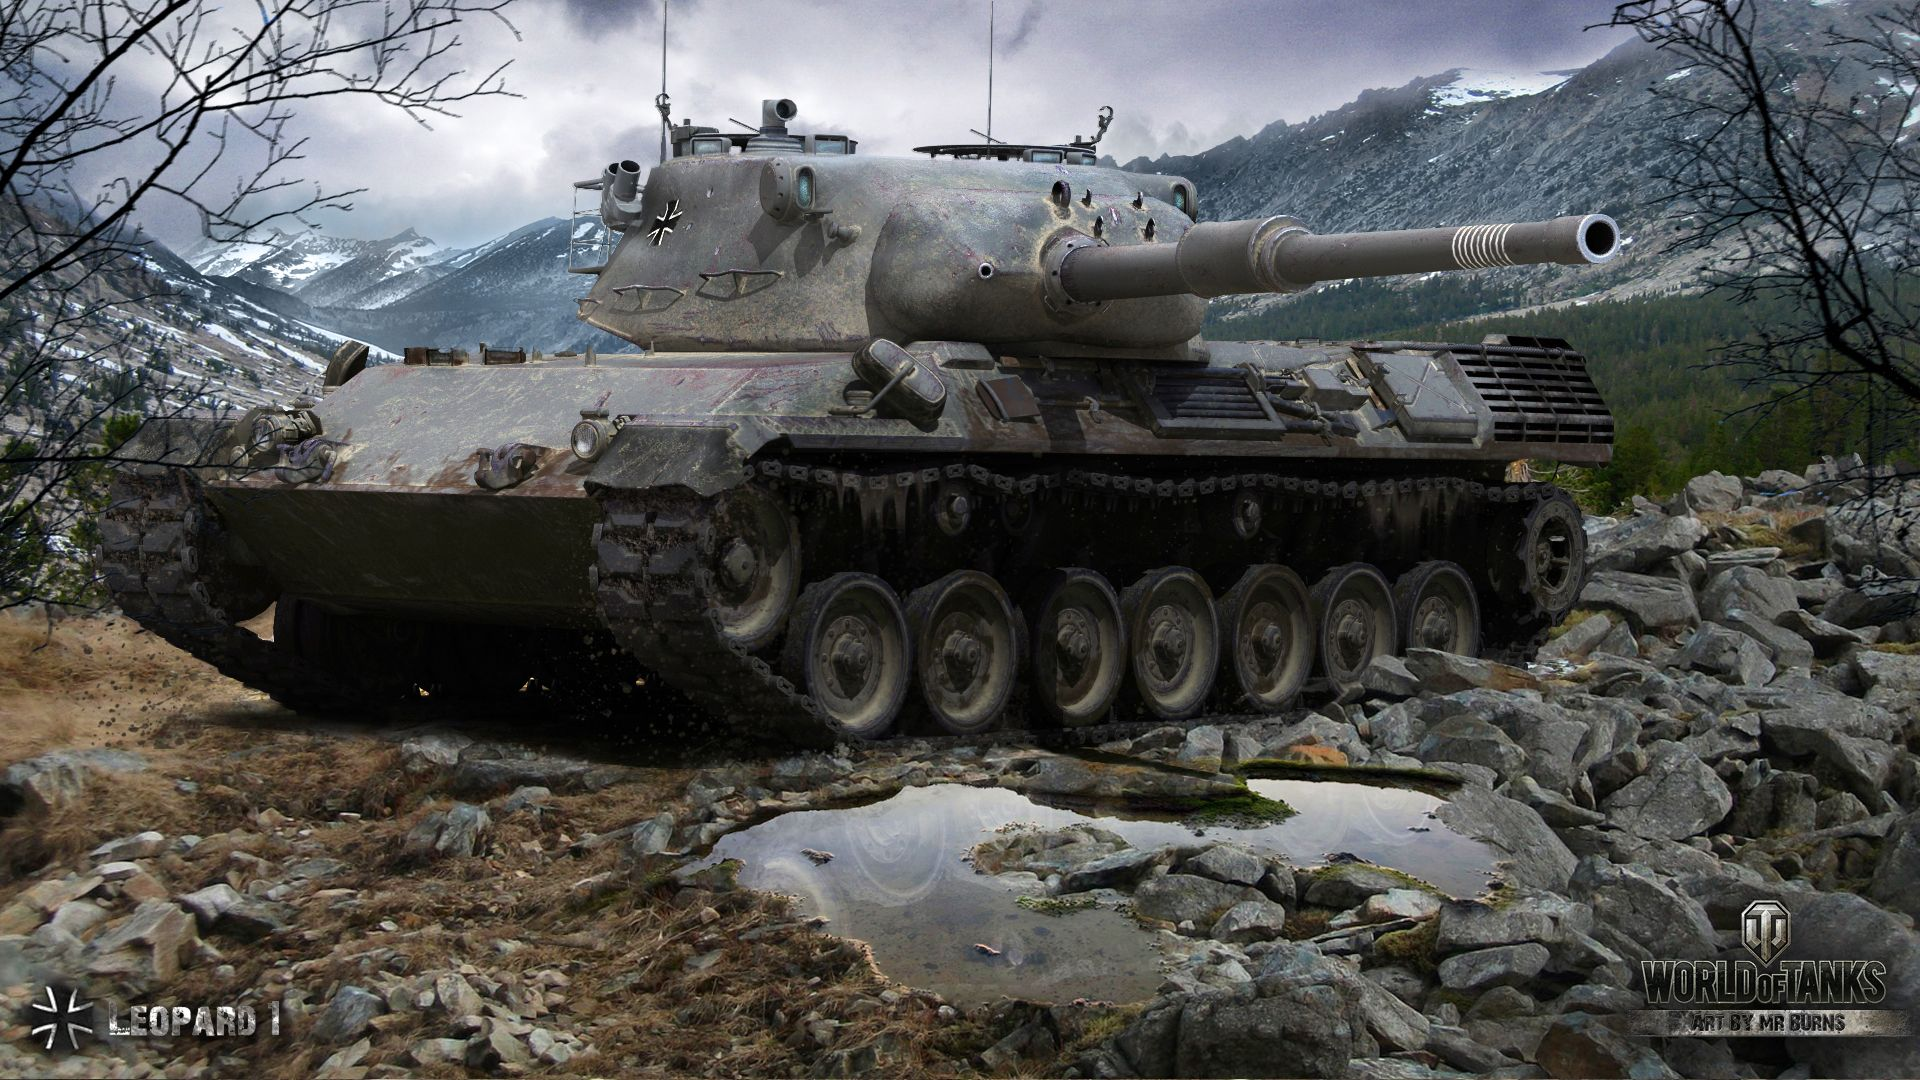 World Of Tanks Wargaming Video Games Leopard Wallpapers Hd HD Wallpapers Download Free Images Wallpaper [1000image.com]